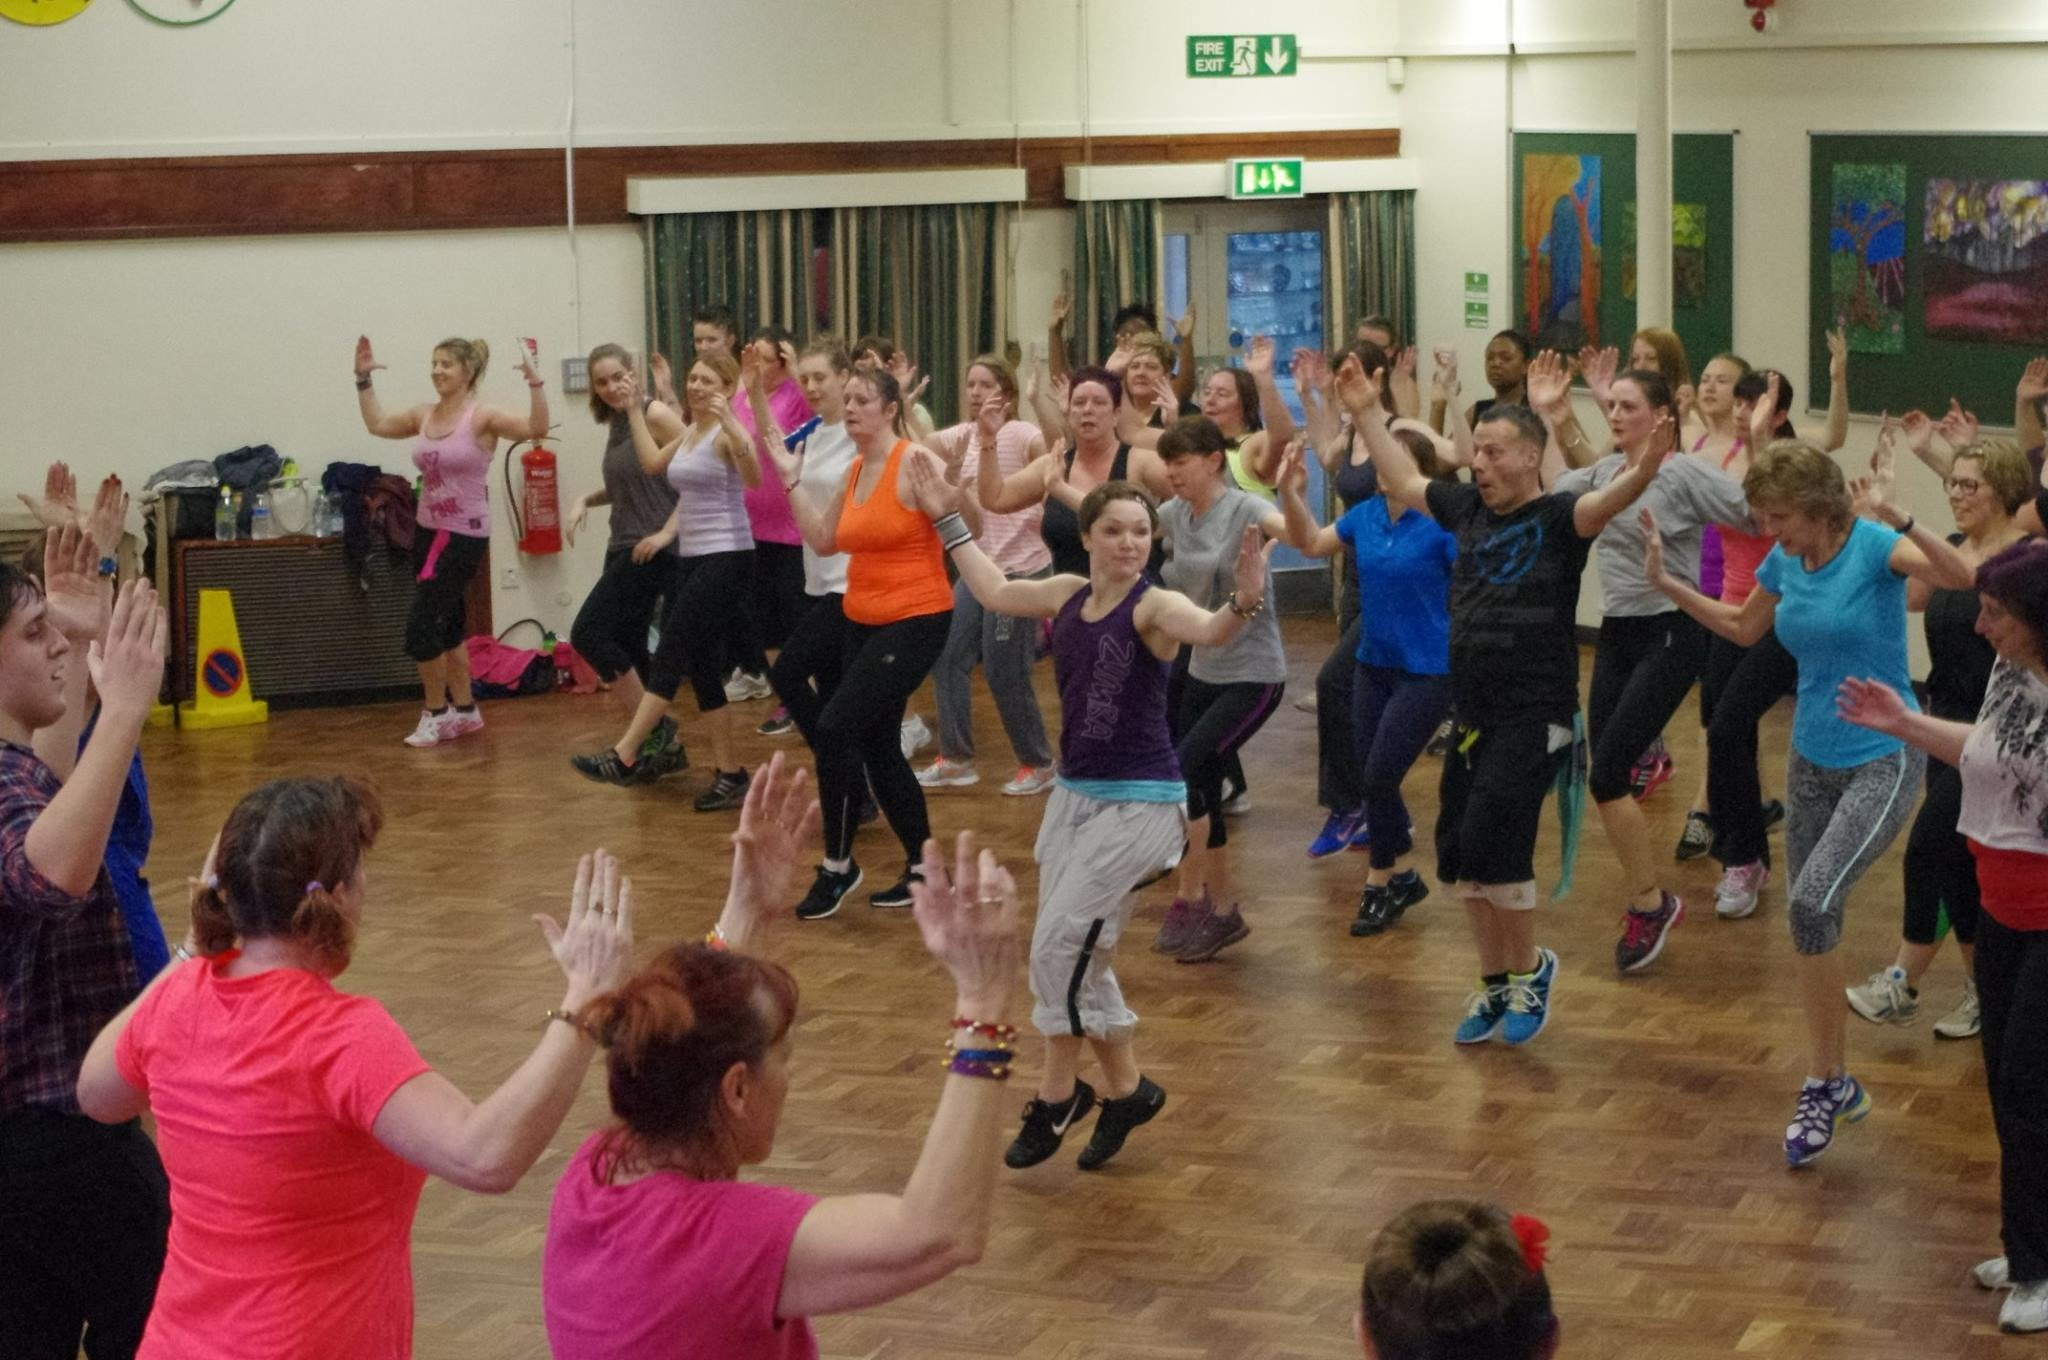 Zumba fitness in Aldershot